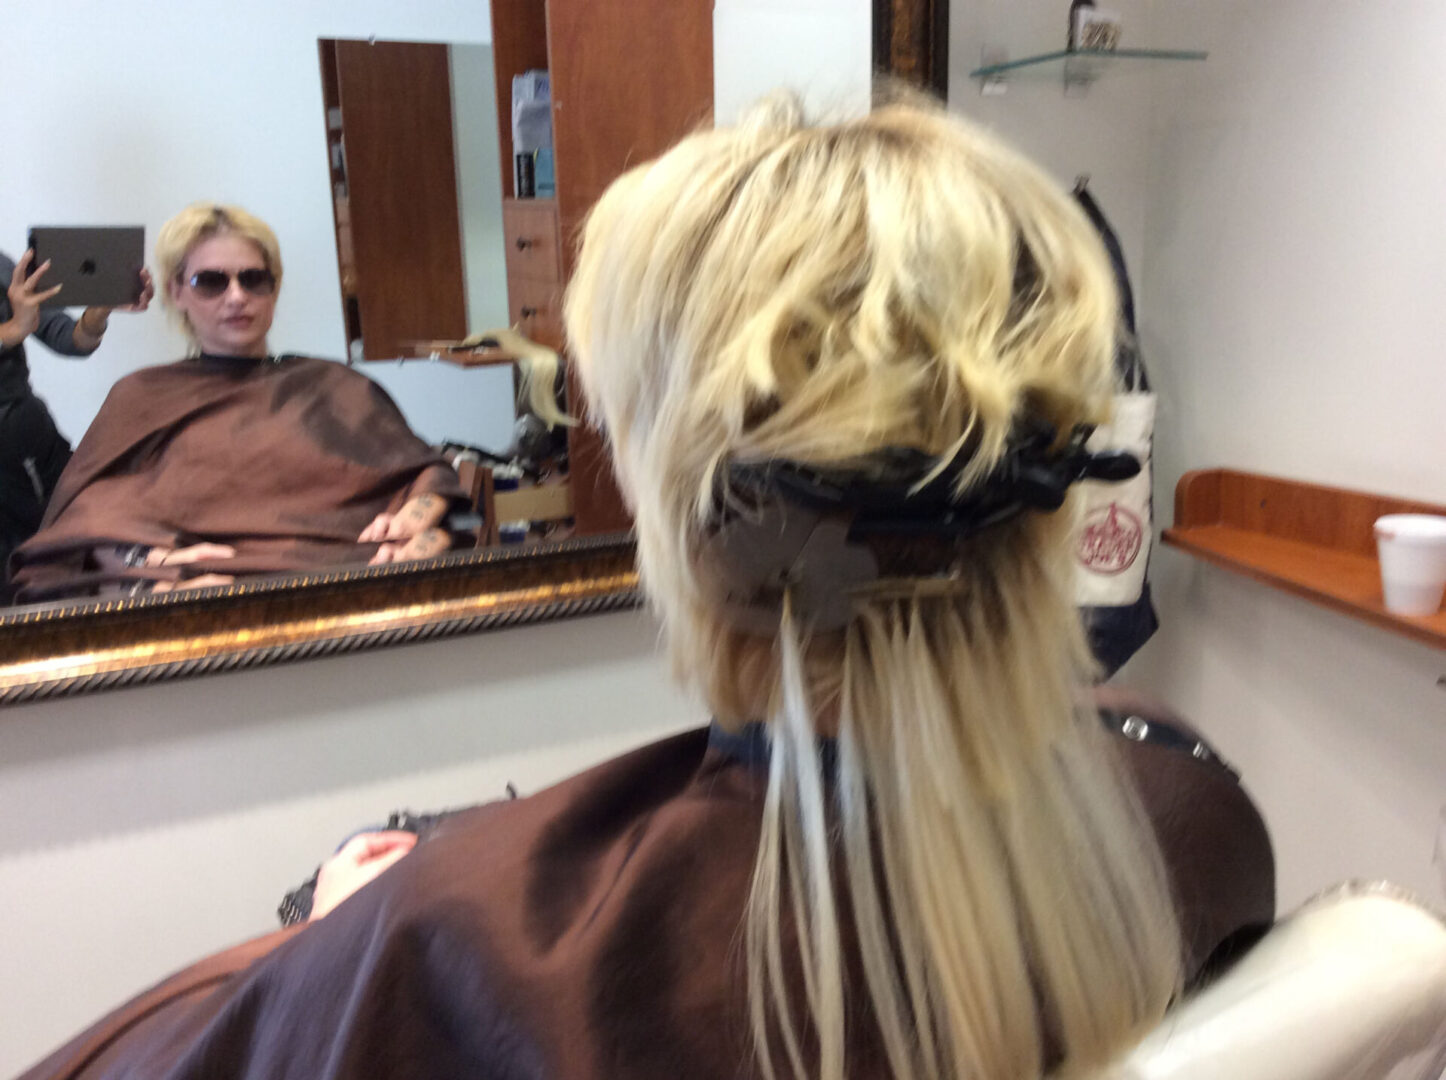 A woman getting hair extensions